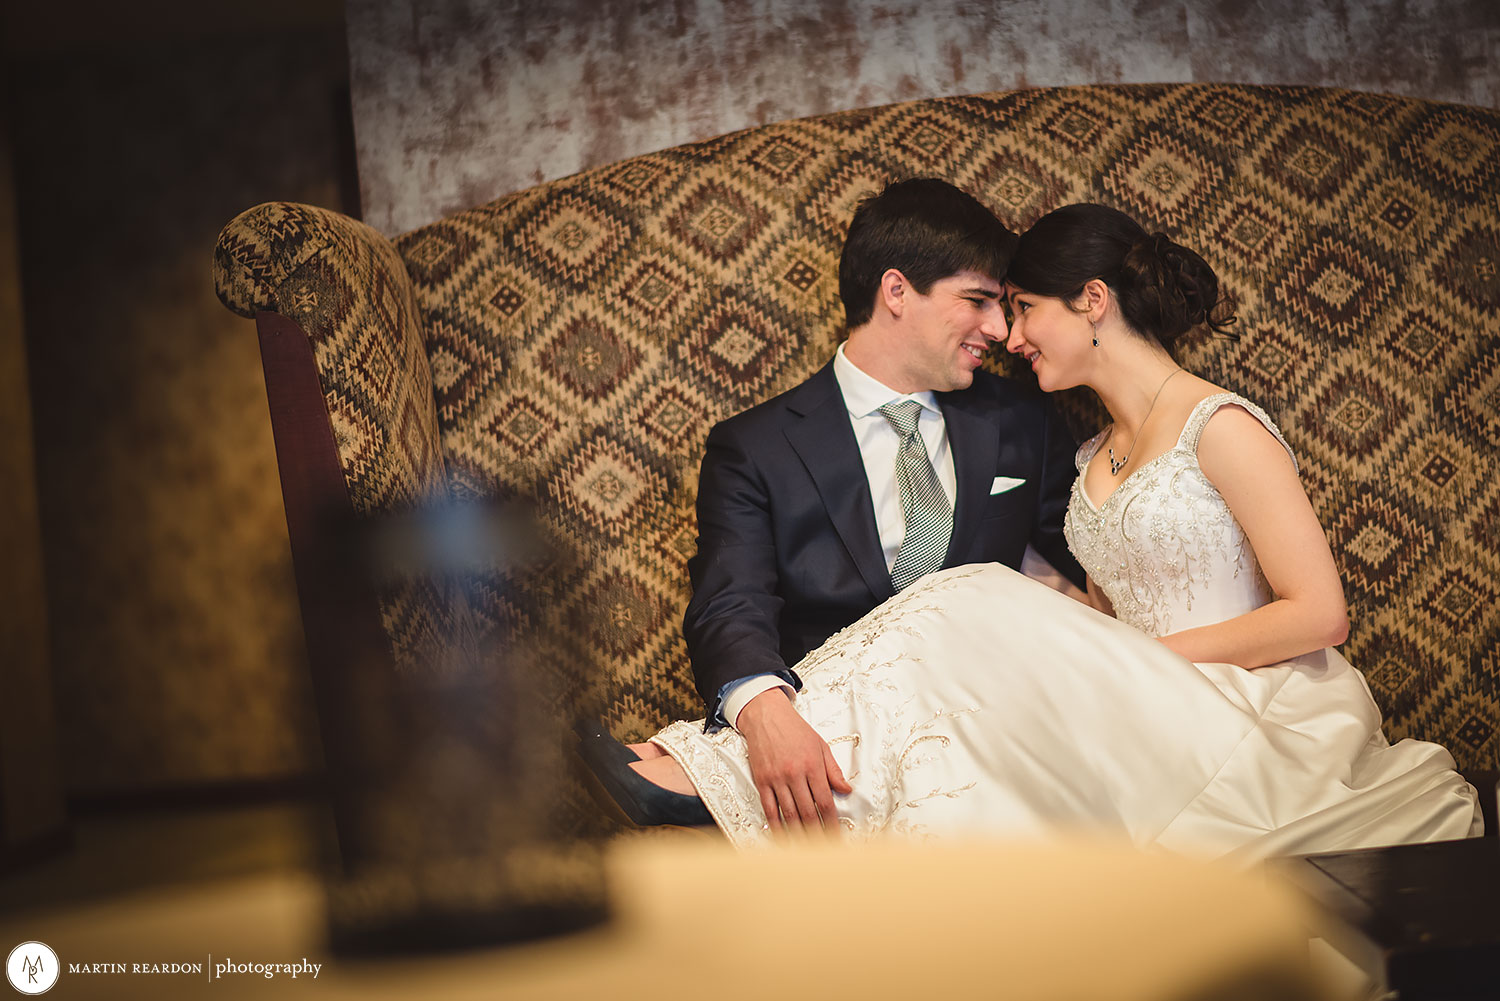 11-Bride-And-Groom-Sitting-On-Couch.jpg